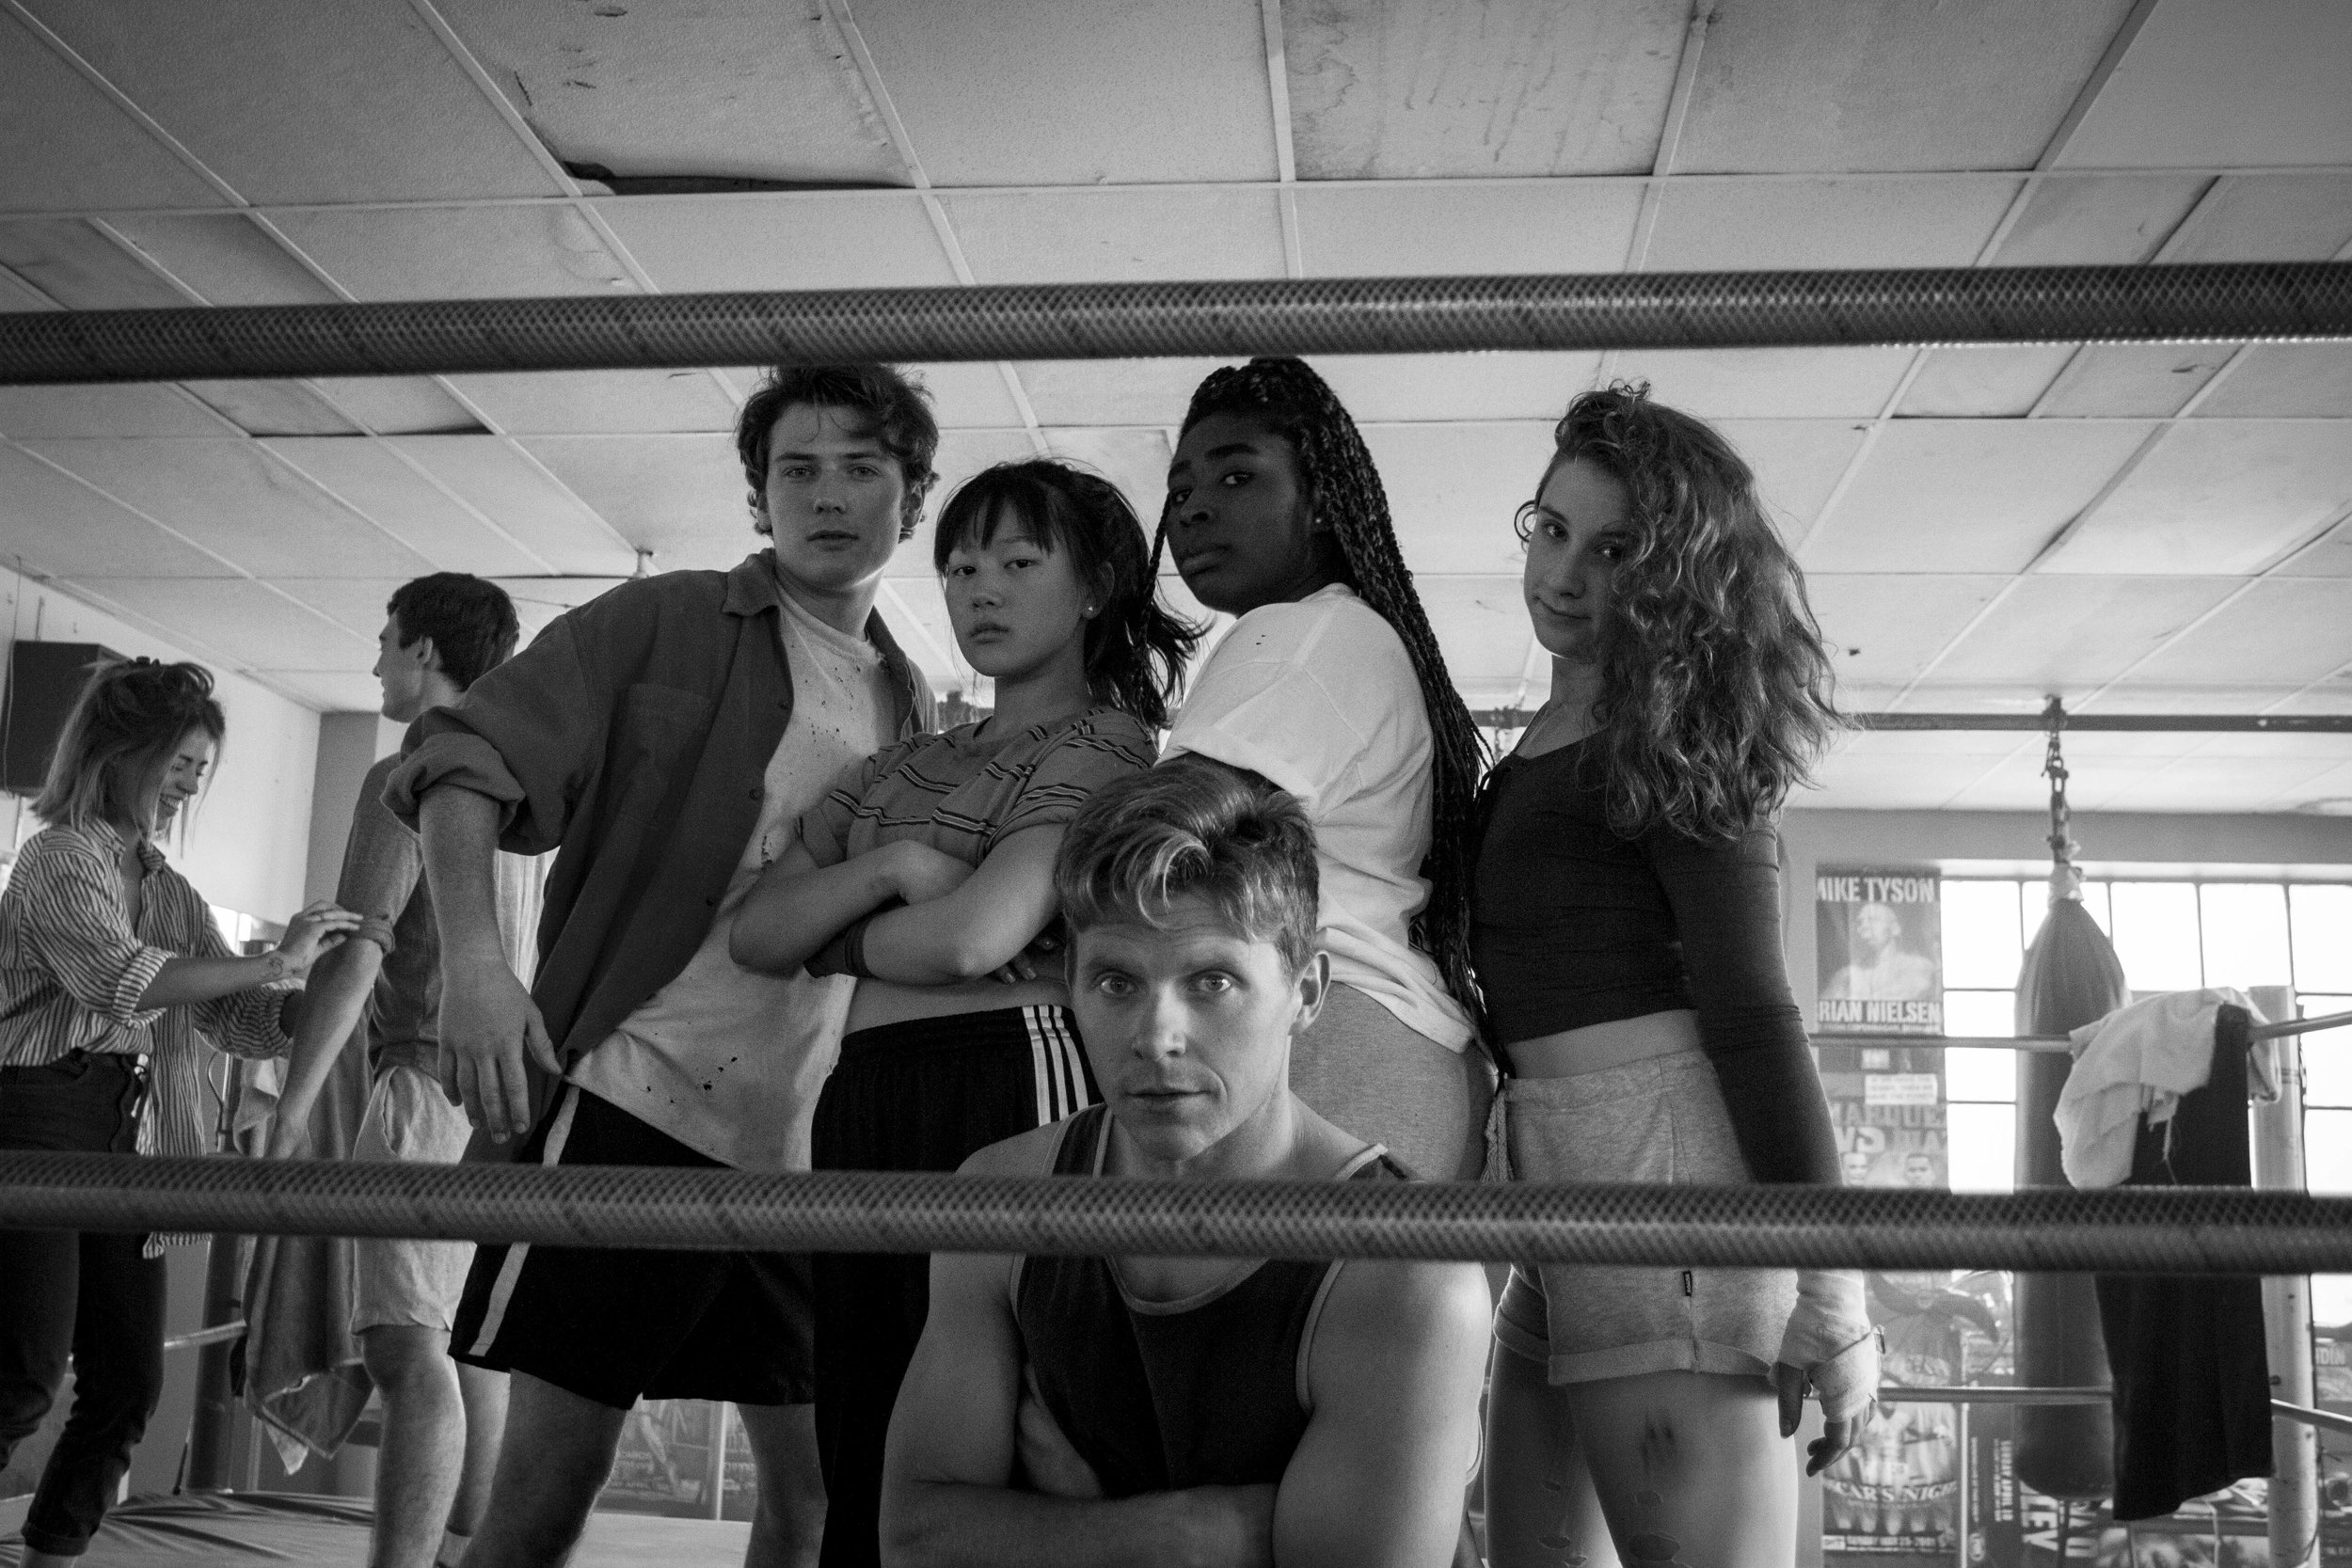 Nick Sinclair, Yerin Ha, Mark Hill, Chika Ikogwe, Devon Campbell | Photo by Zelman Cressey-Gladwin